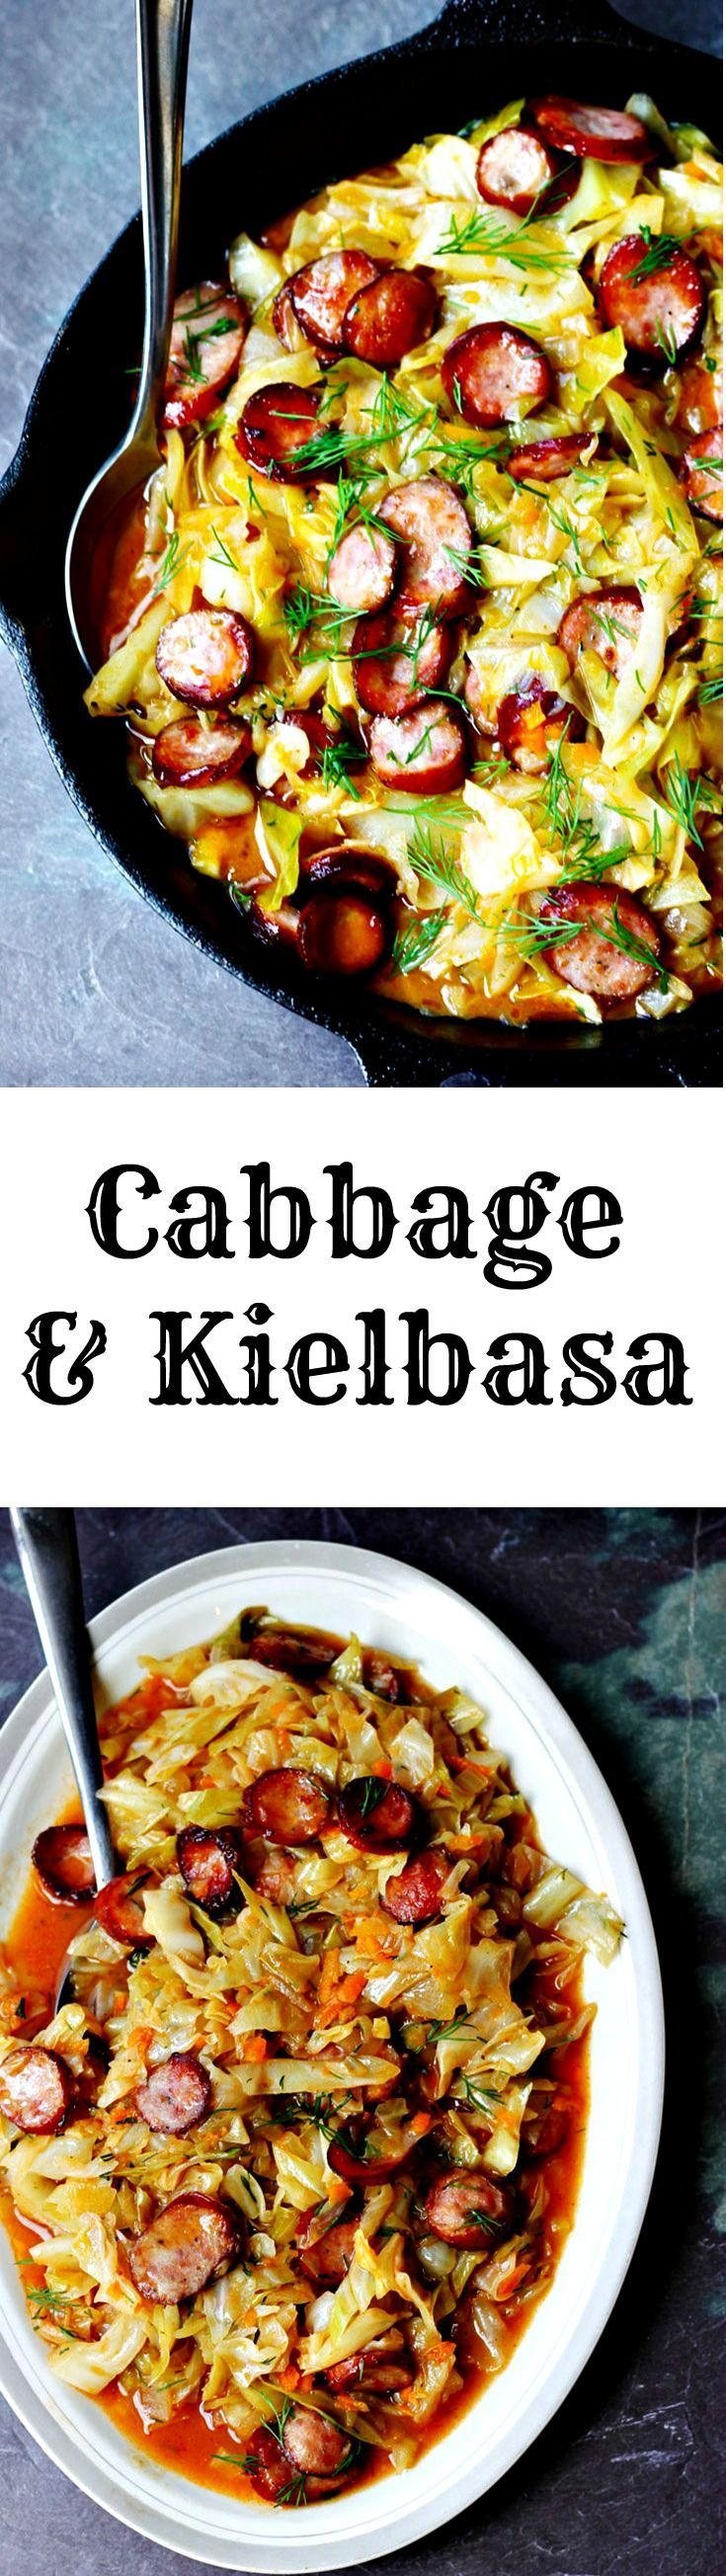 Cabbage and Kielbasa come together to form a perfect Polish summer hunter's stew. It's made from young cabbage, that is at its peak at the begging of the summer, with the addition of a smoky Polish sausage and a fragrant dill. It makes for a delicious European treat.